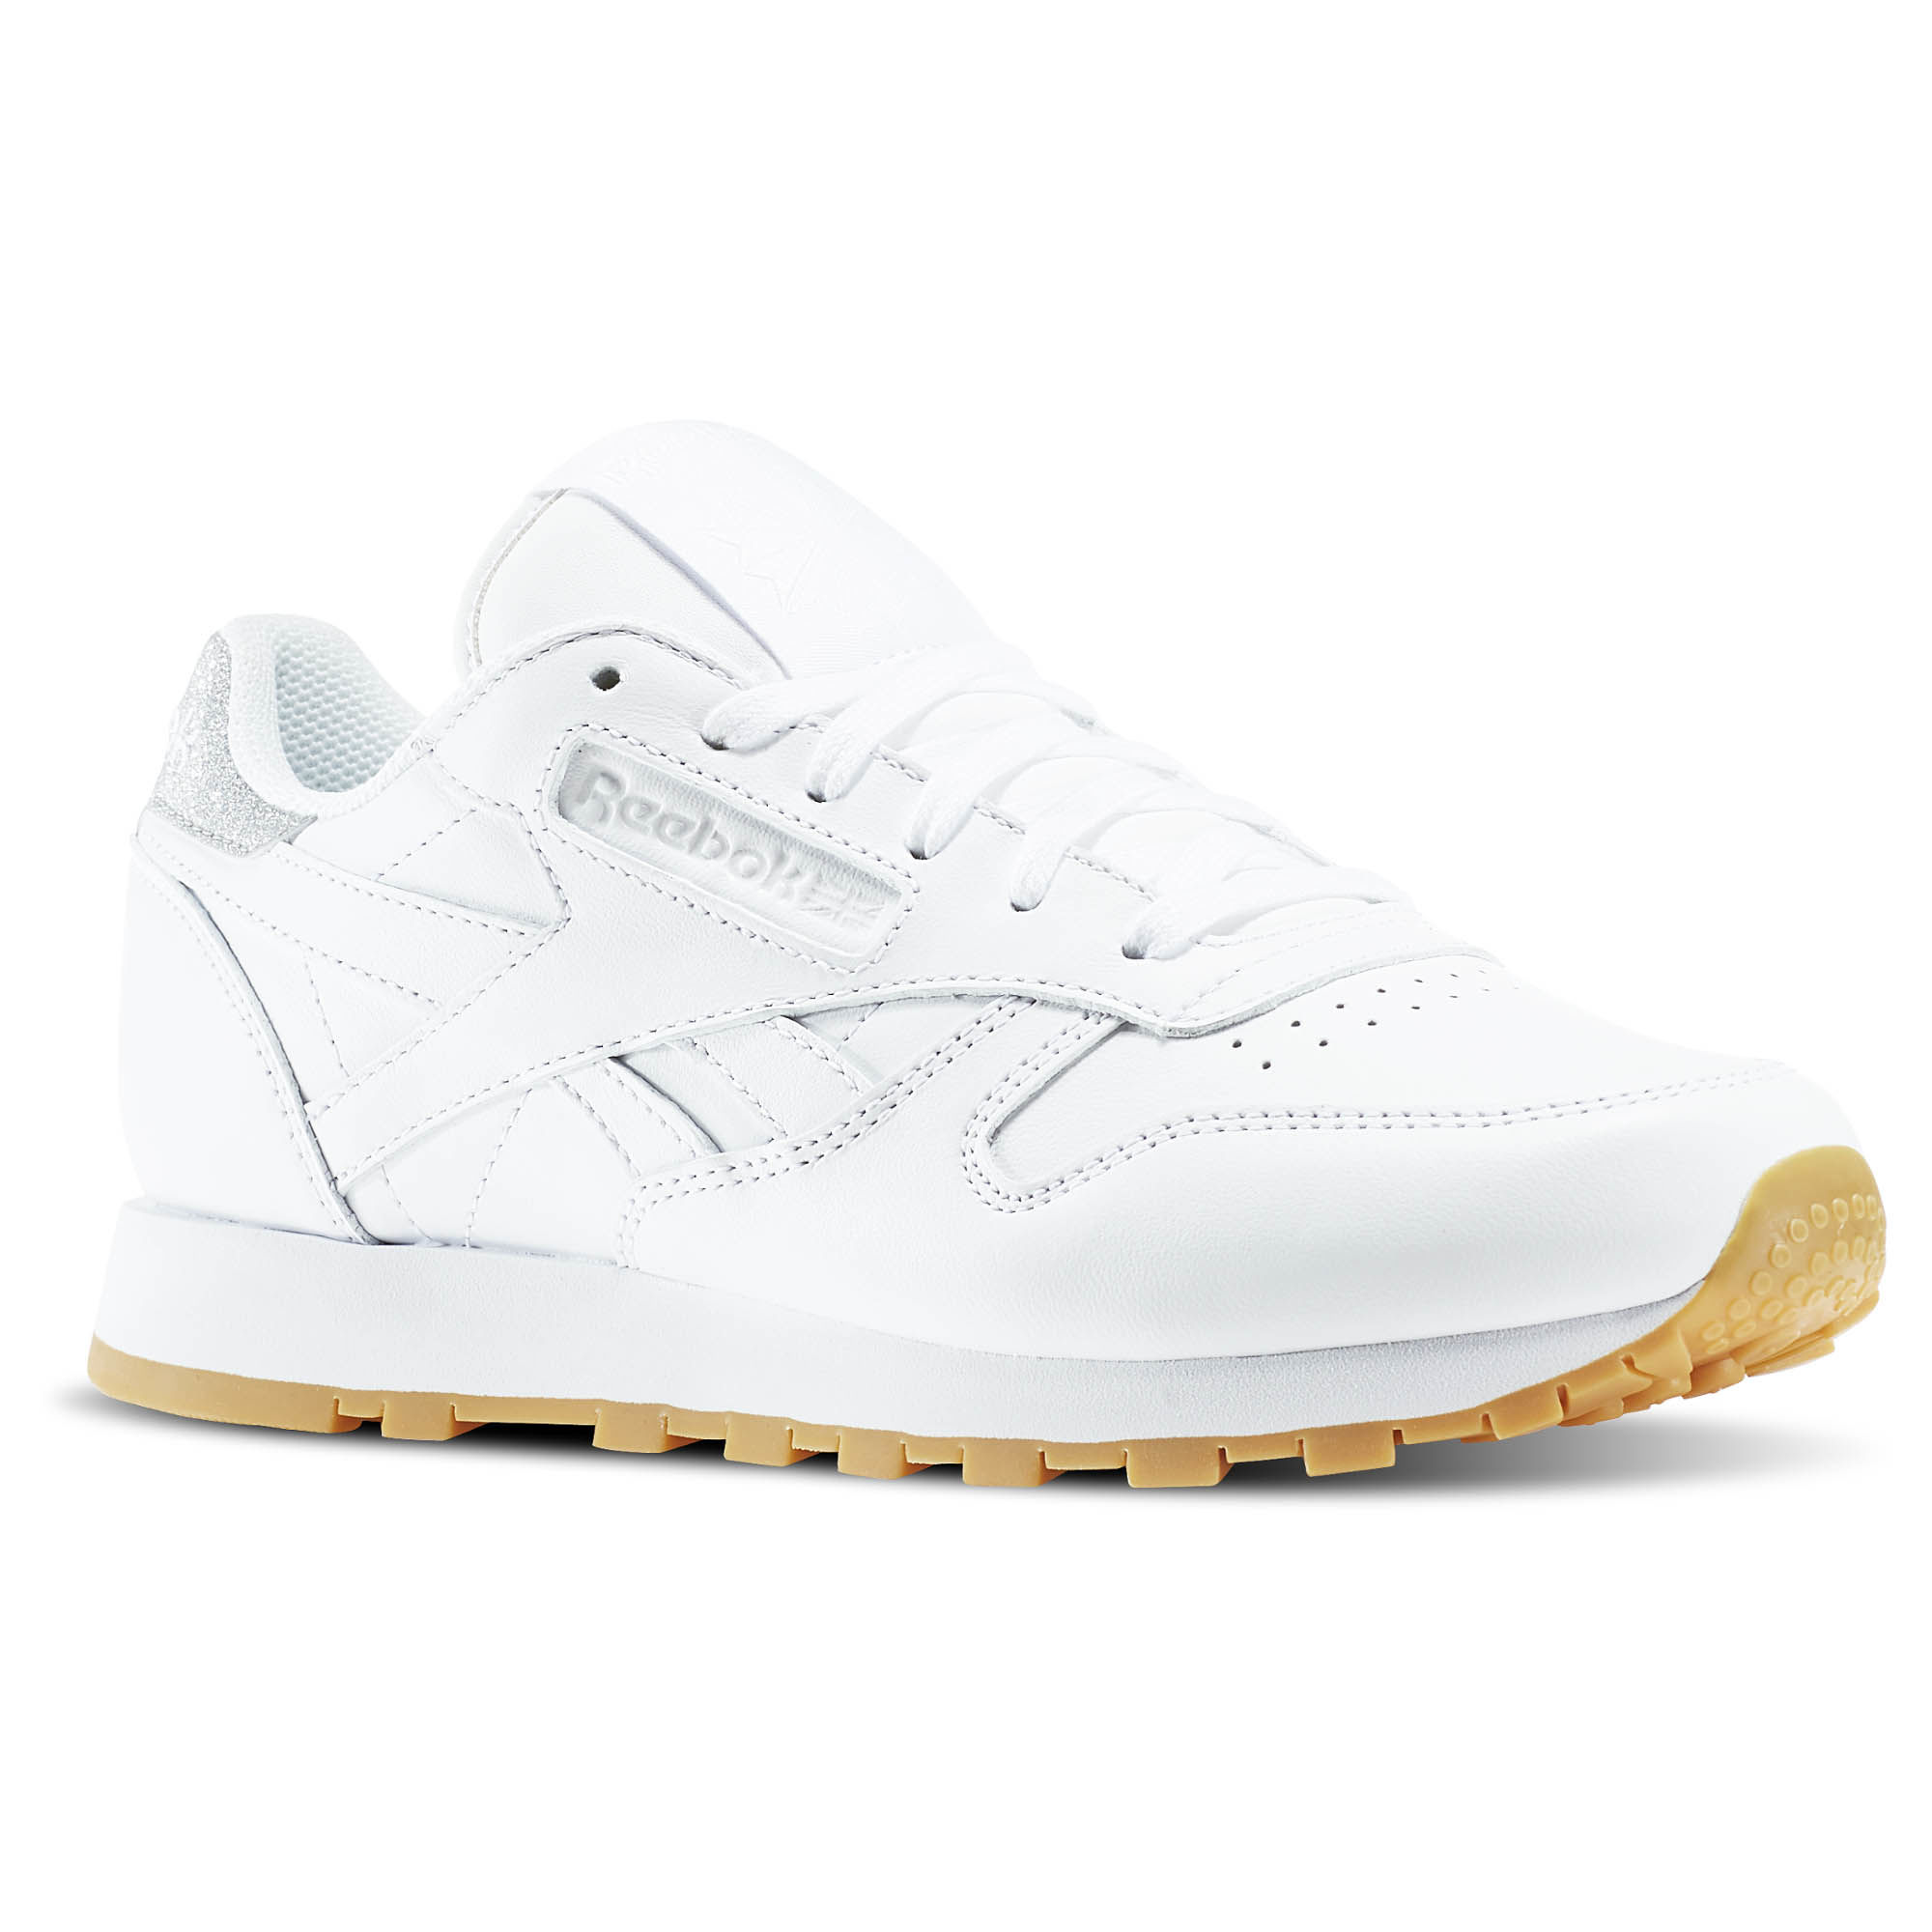 Detalles de Sneakers BD4423 Zapatillas Reebok Classic Leather Diamond Blanco